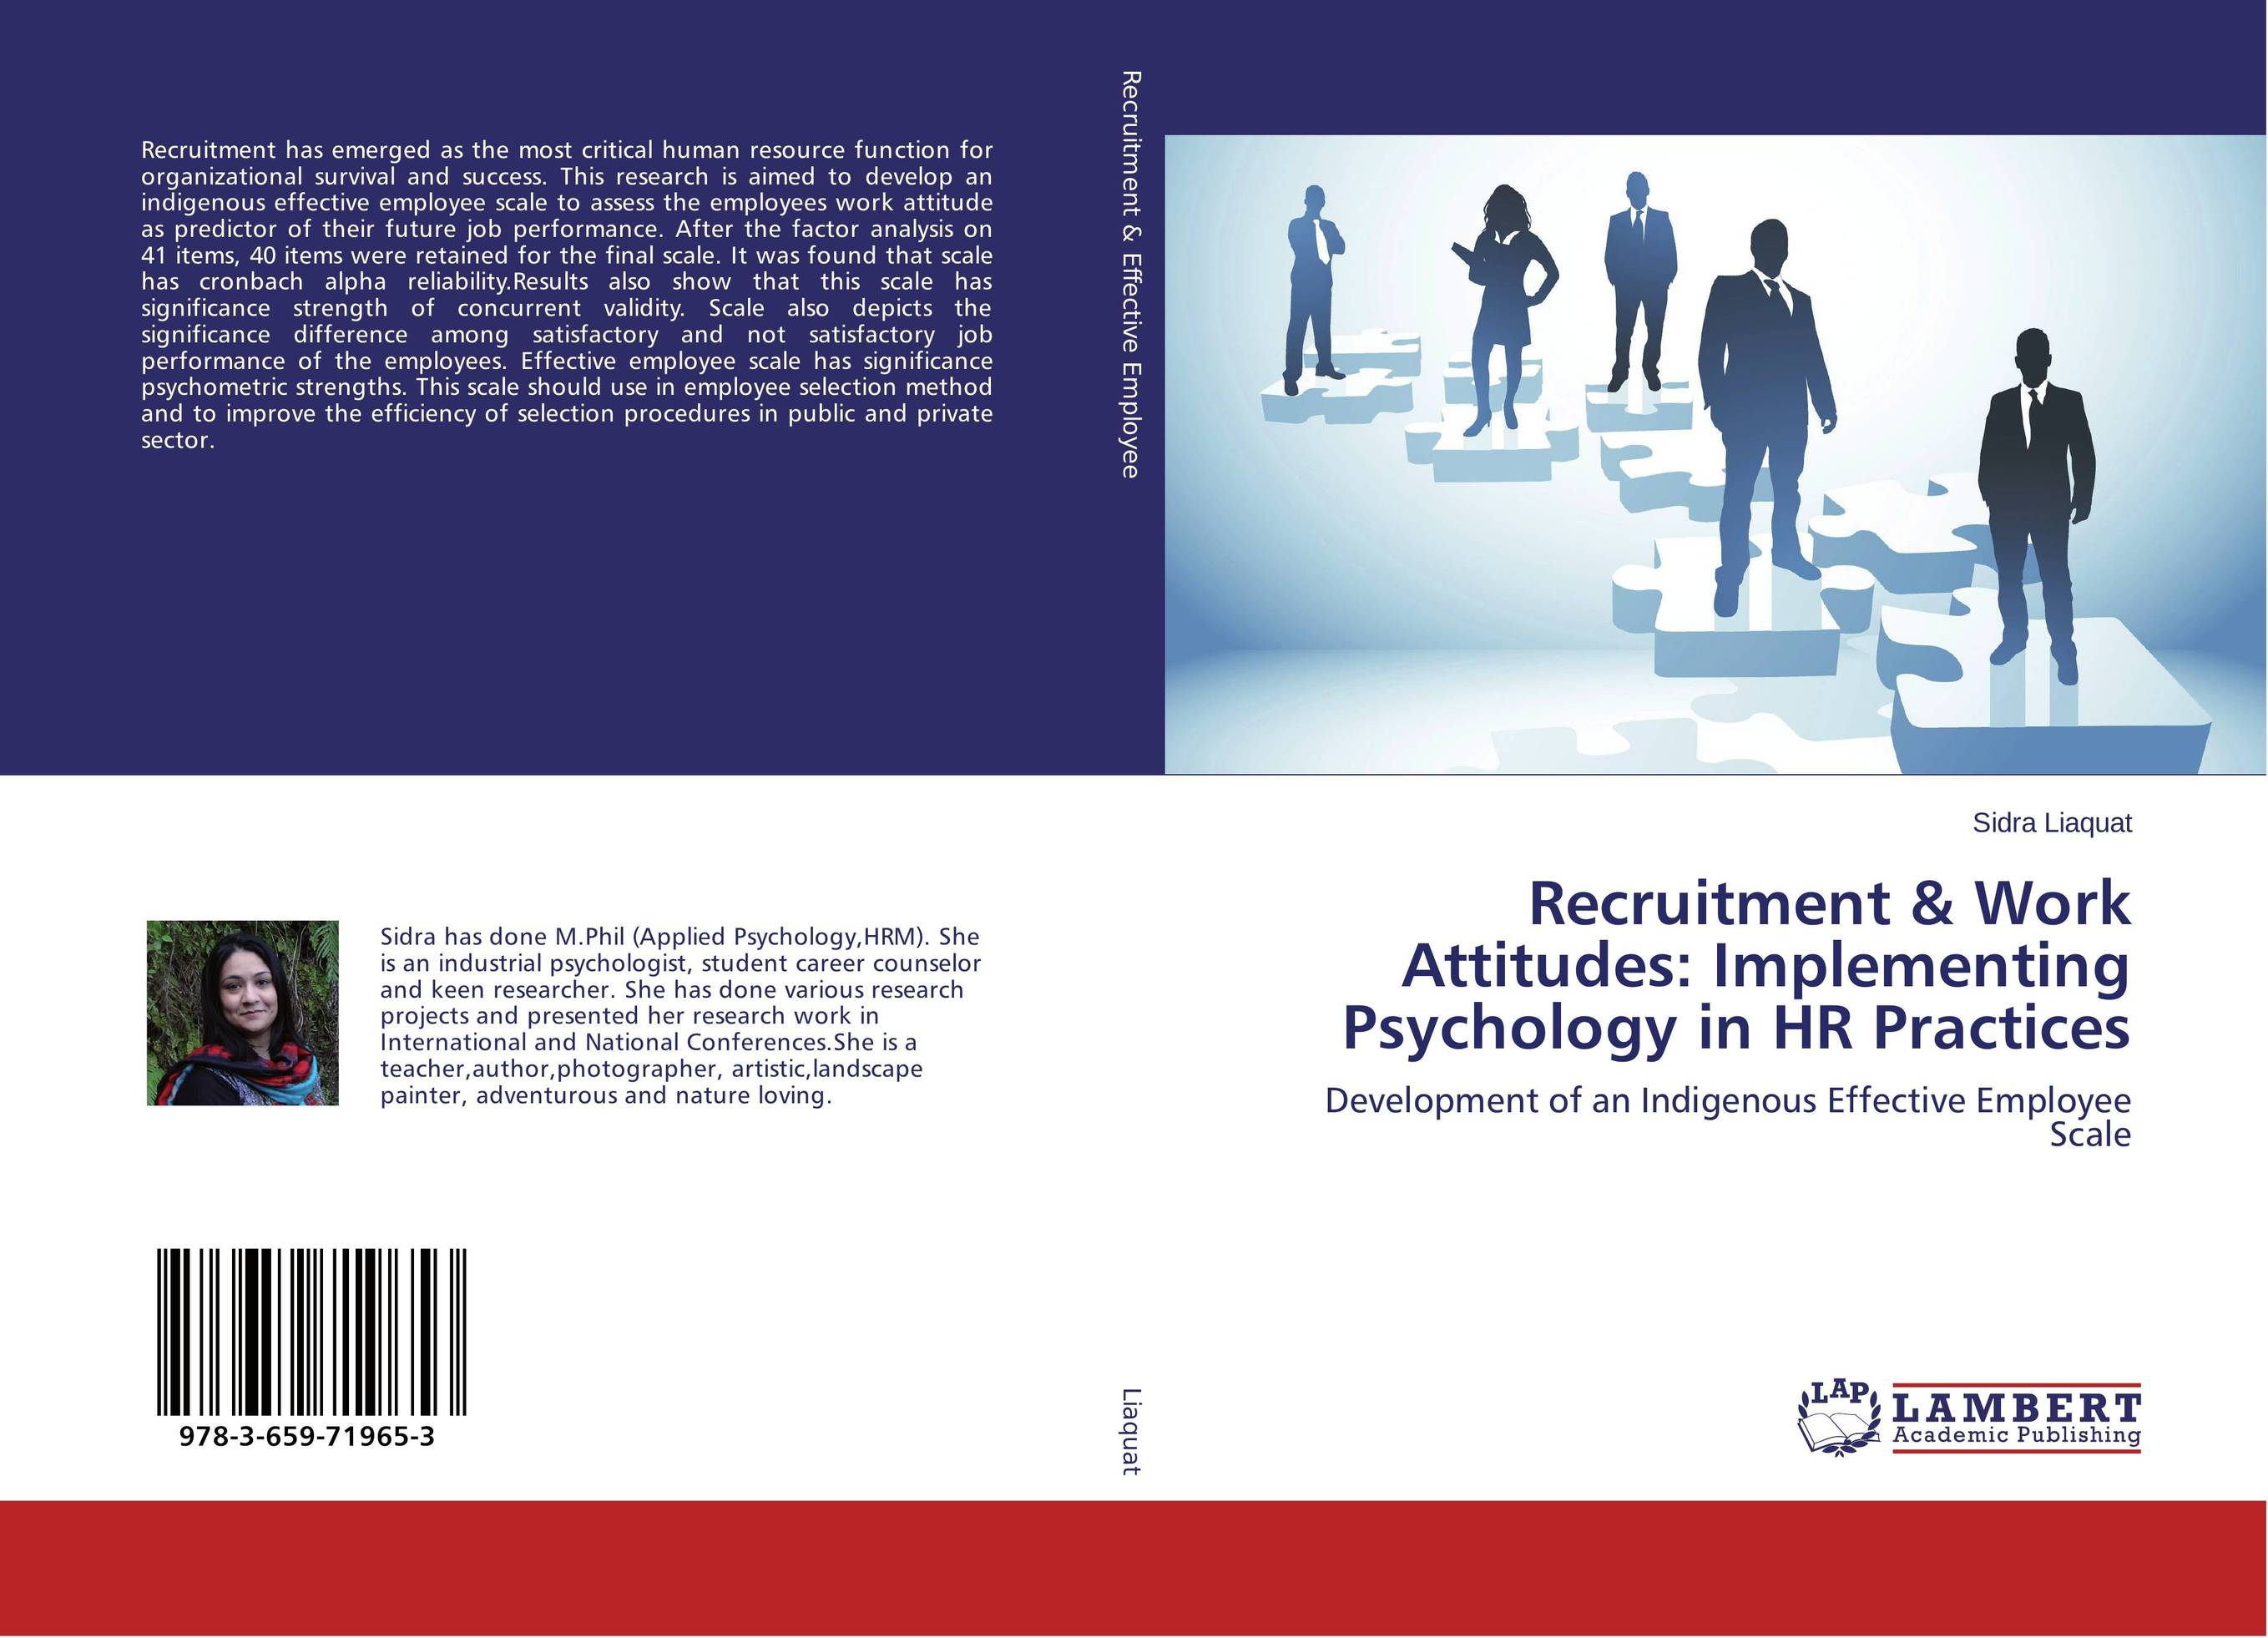 Recruitment & Work Attitudes: Implementing Psychology in HR Practices link for tractor parts or other items not found in the store covers the items as agreed